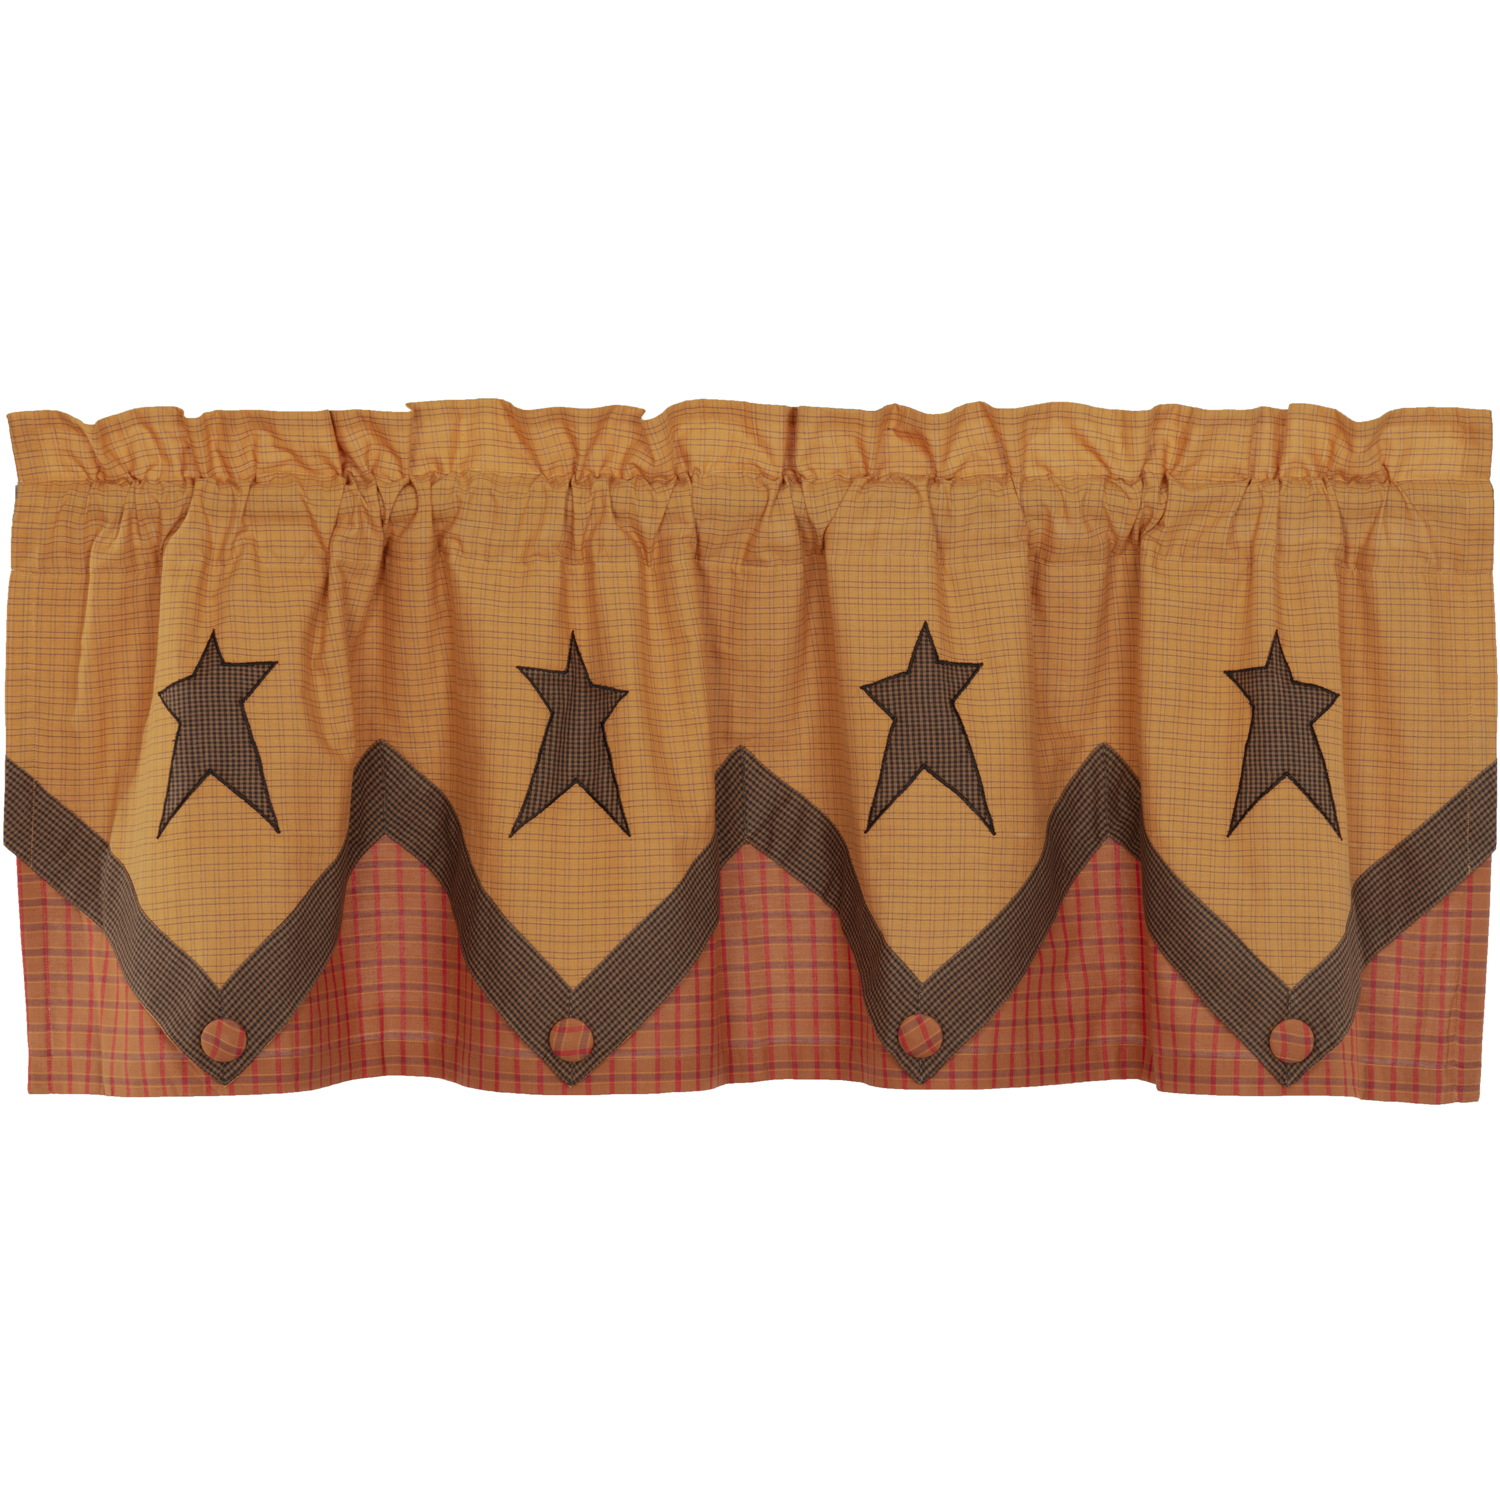 Stratton Primitive Star Valance Layered 20x60